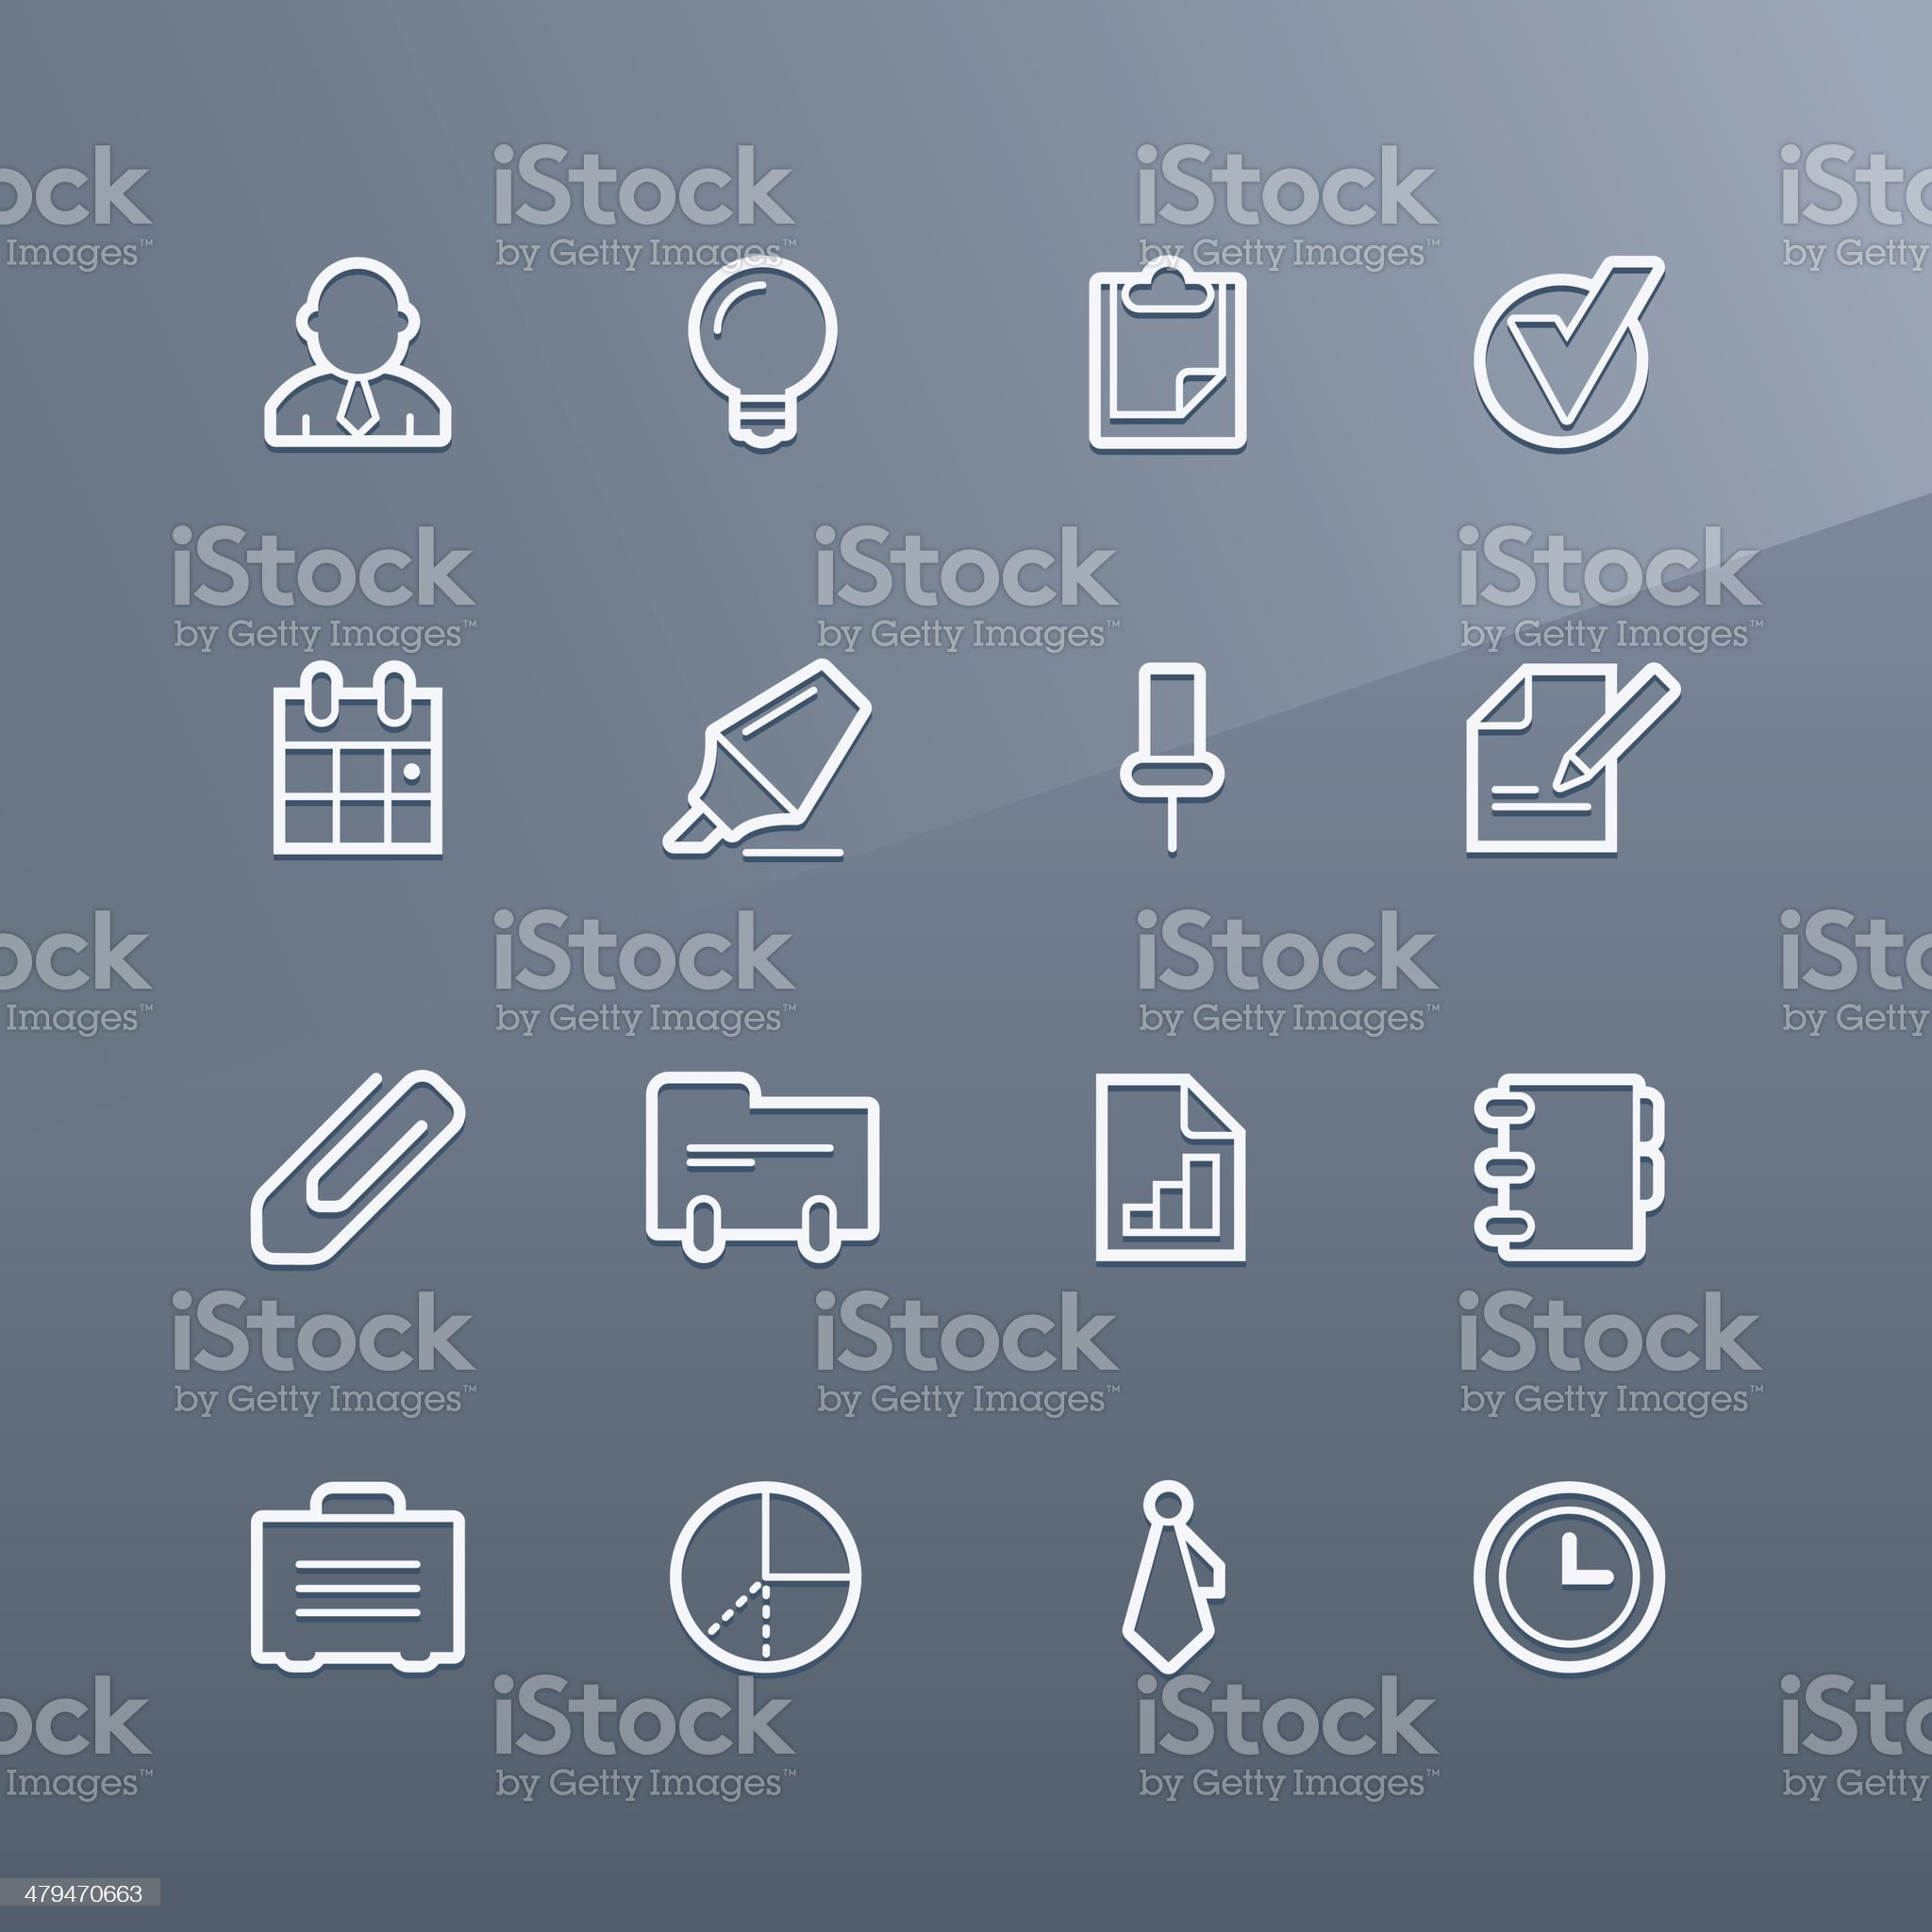 Business icons - Linea series royalty-free stock vector art